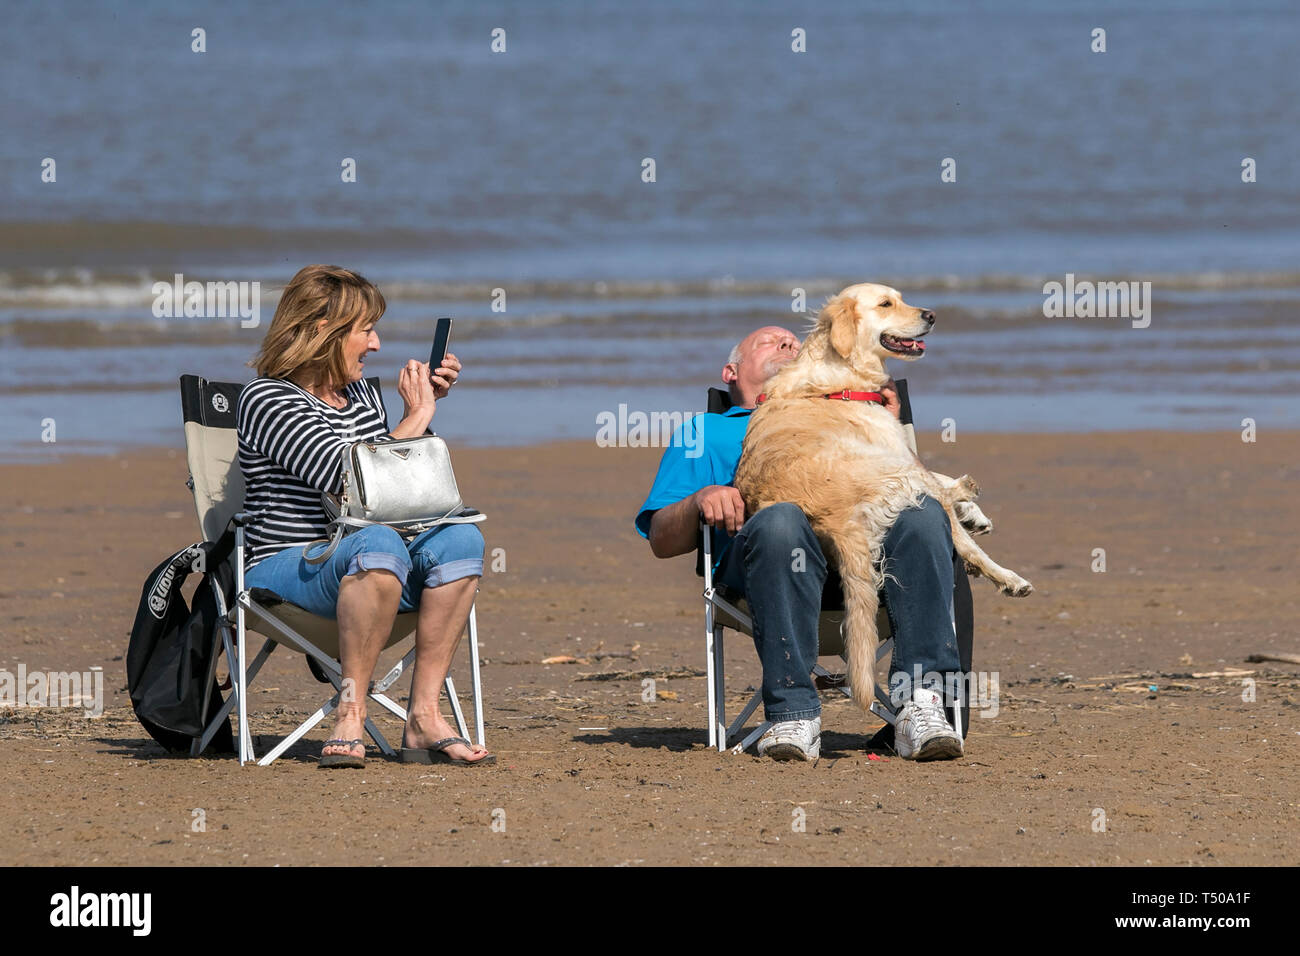 Southport, Merseyside, UK. 19th April 2019. UK Weather: Good Friday Holiday.  People make the most of the Easter weekend & gorgeous sunny warm spring weather by having some fun in the sun on the golden sands of Southport beach in Merseyside.  Credit: Cernan Elias/Alamy Live News Stock Photo